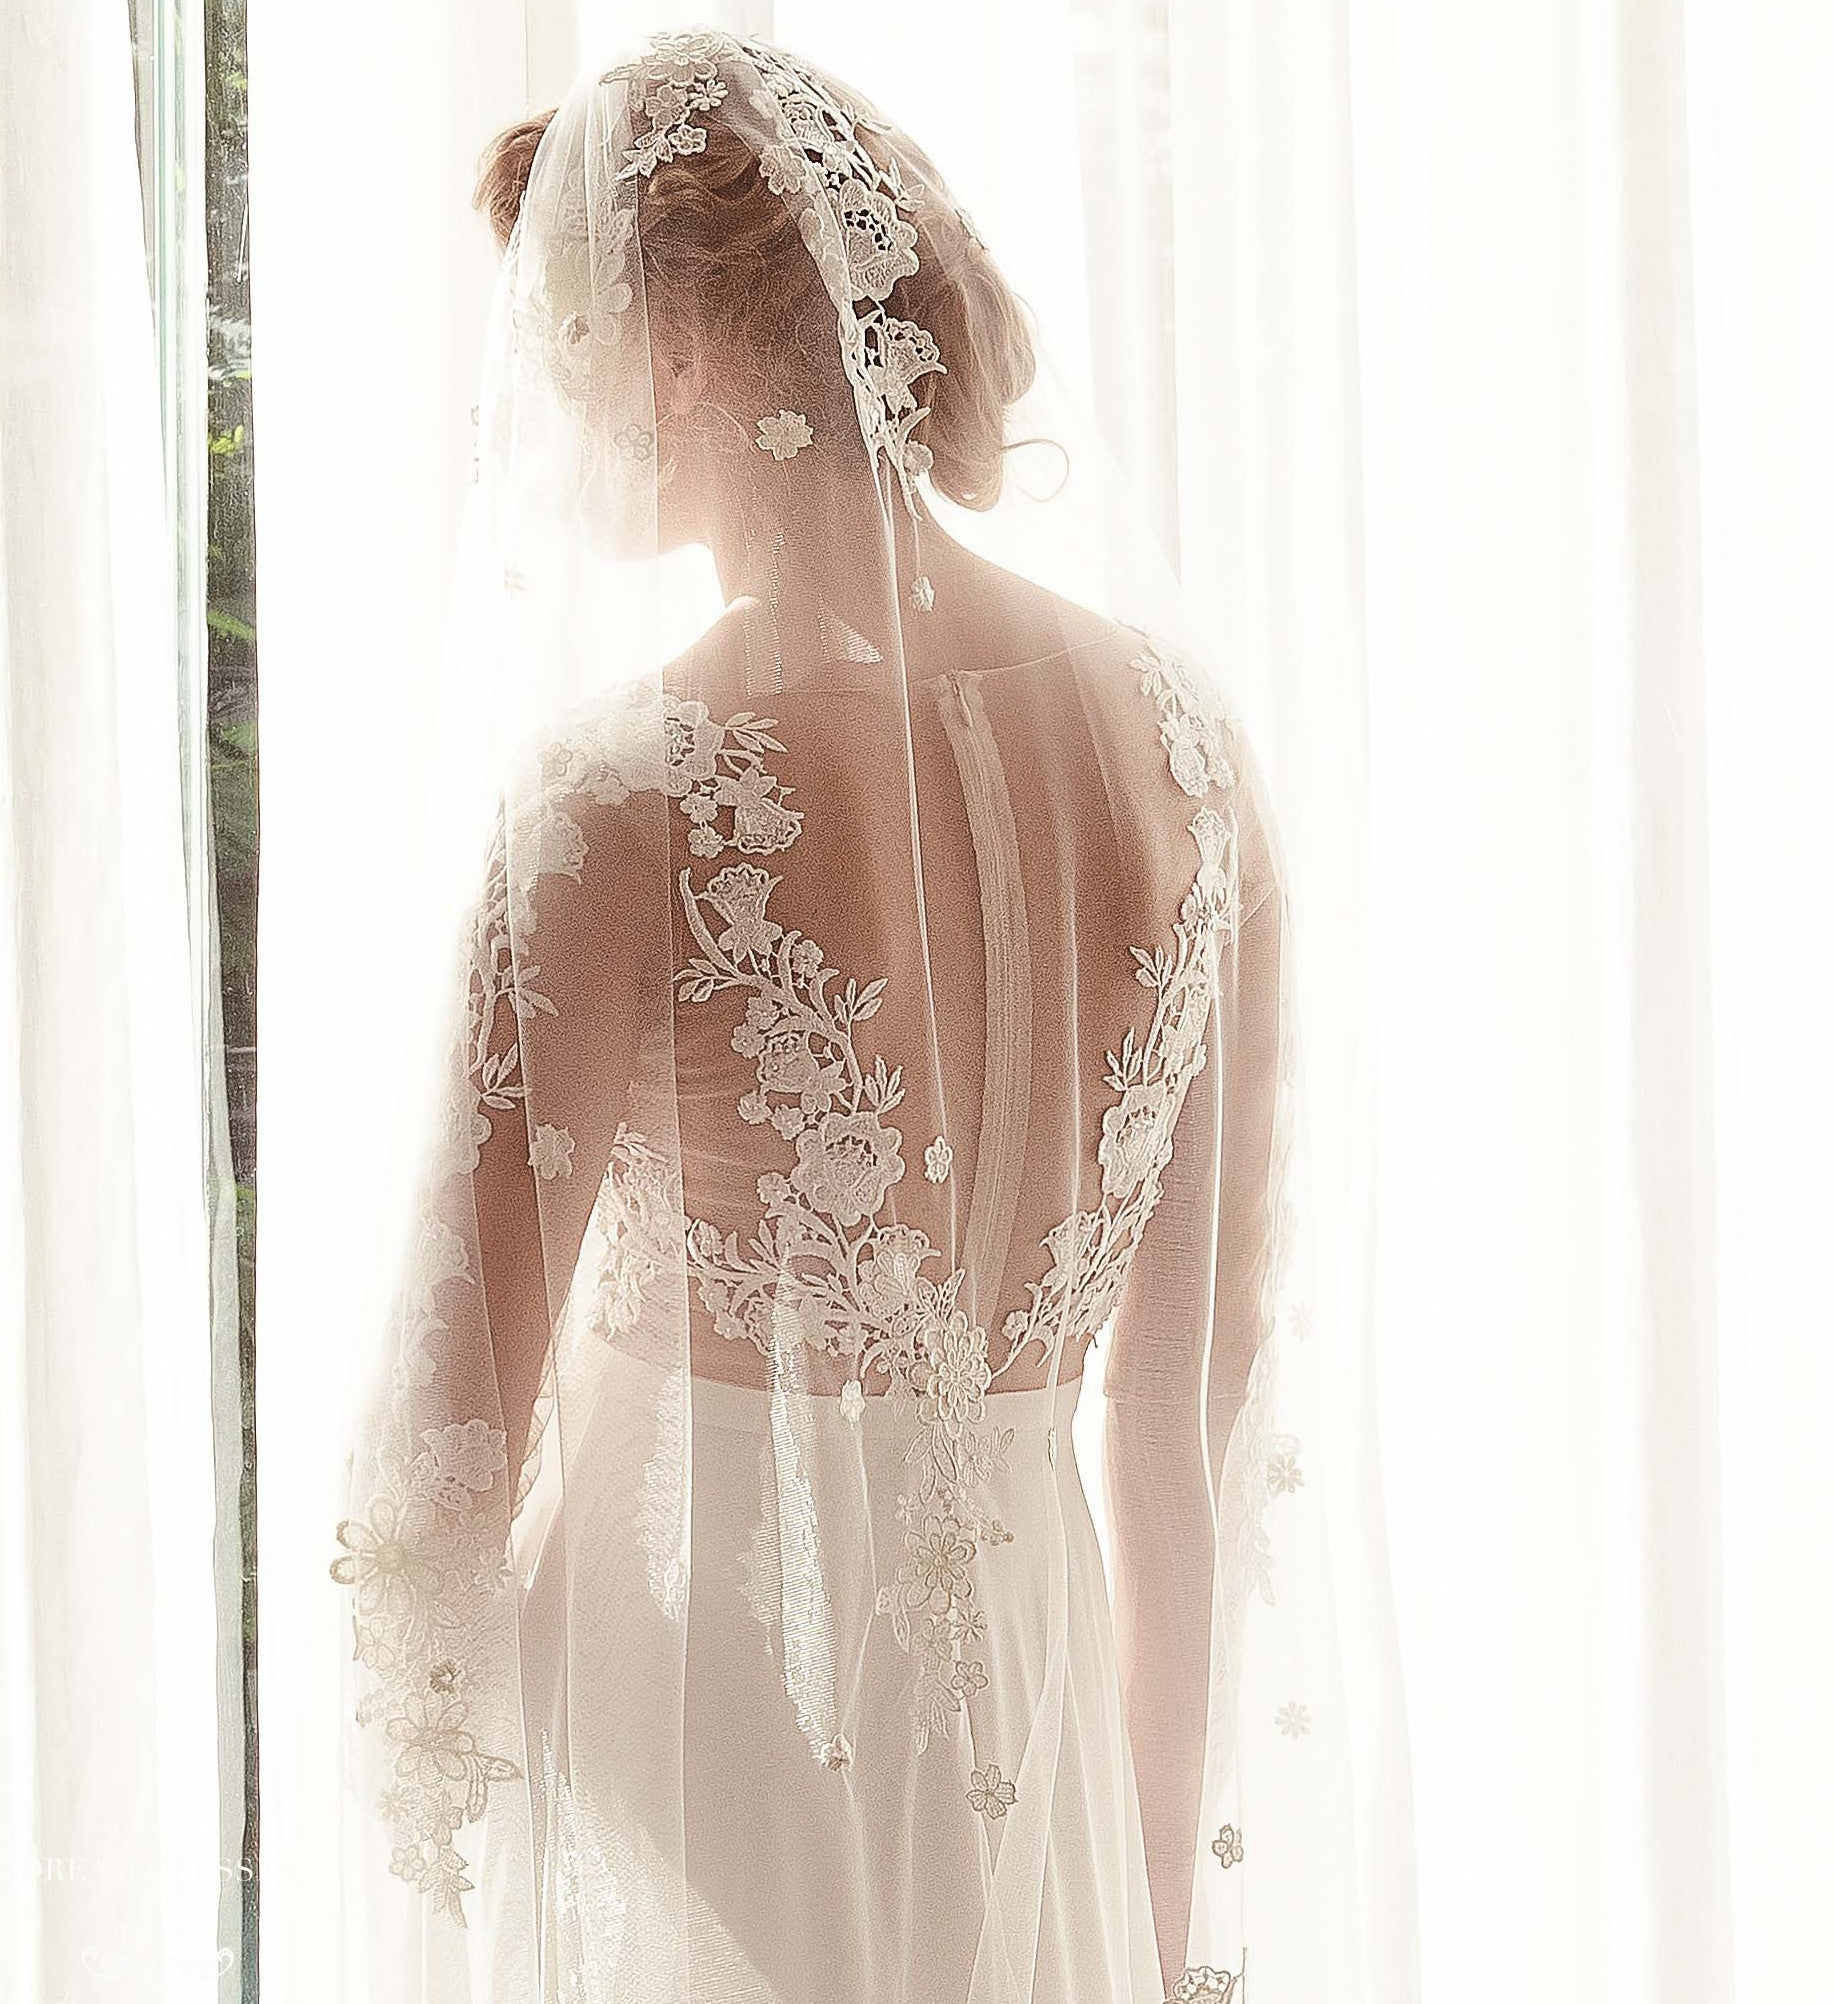 Lace Applique Bridal Veil (#Mabry)